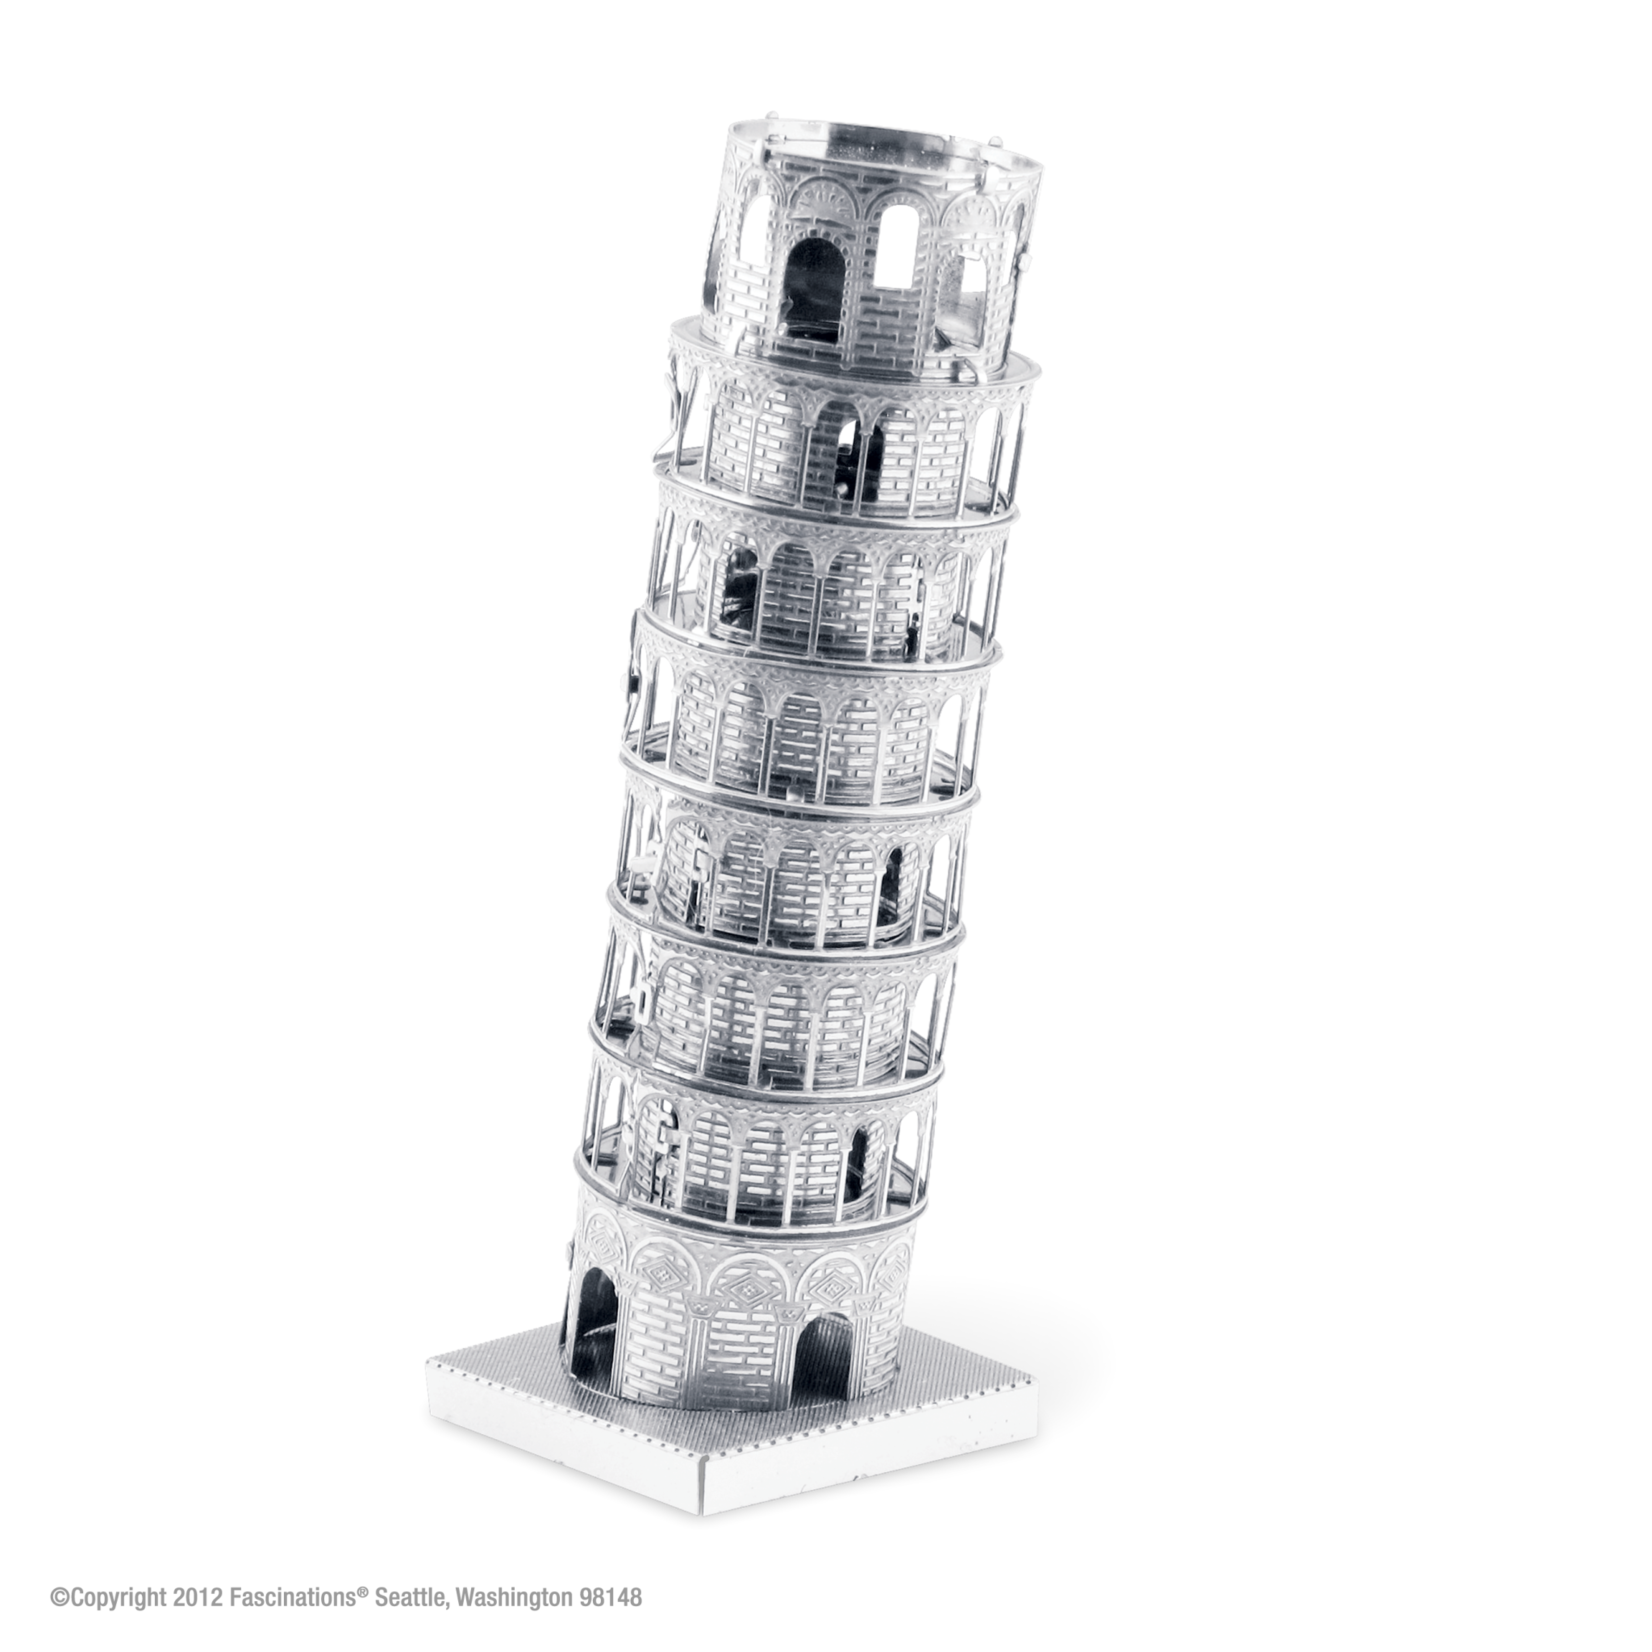 Fascinations Leaning Tower of Pisa